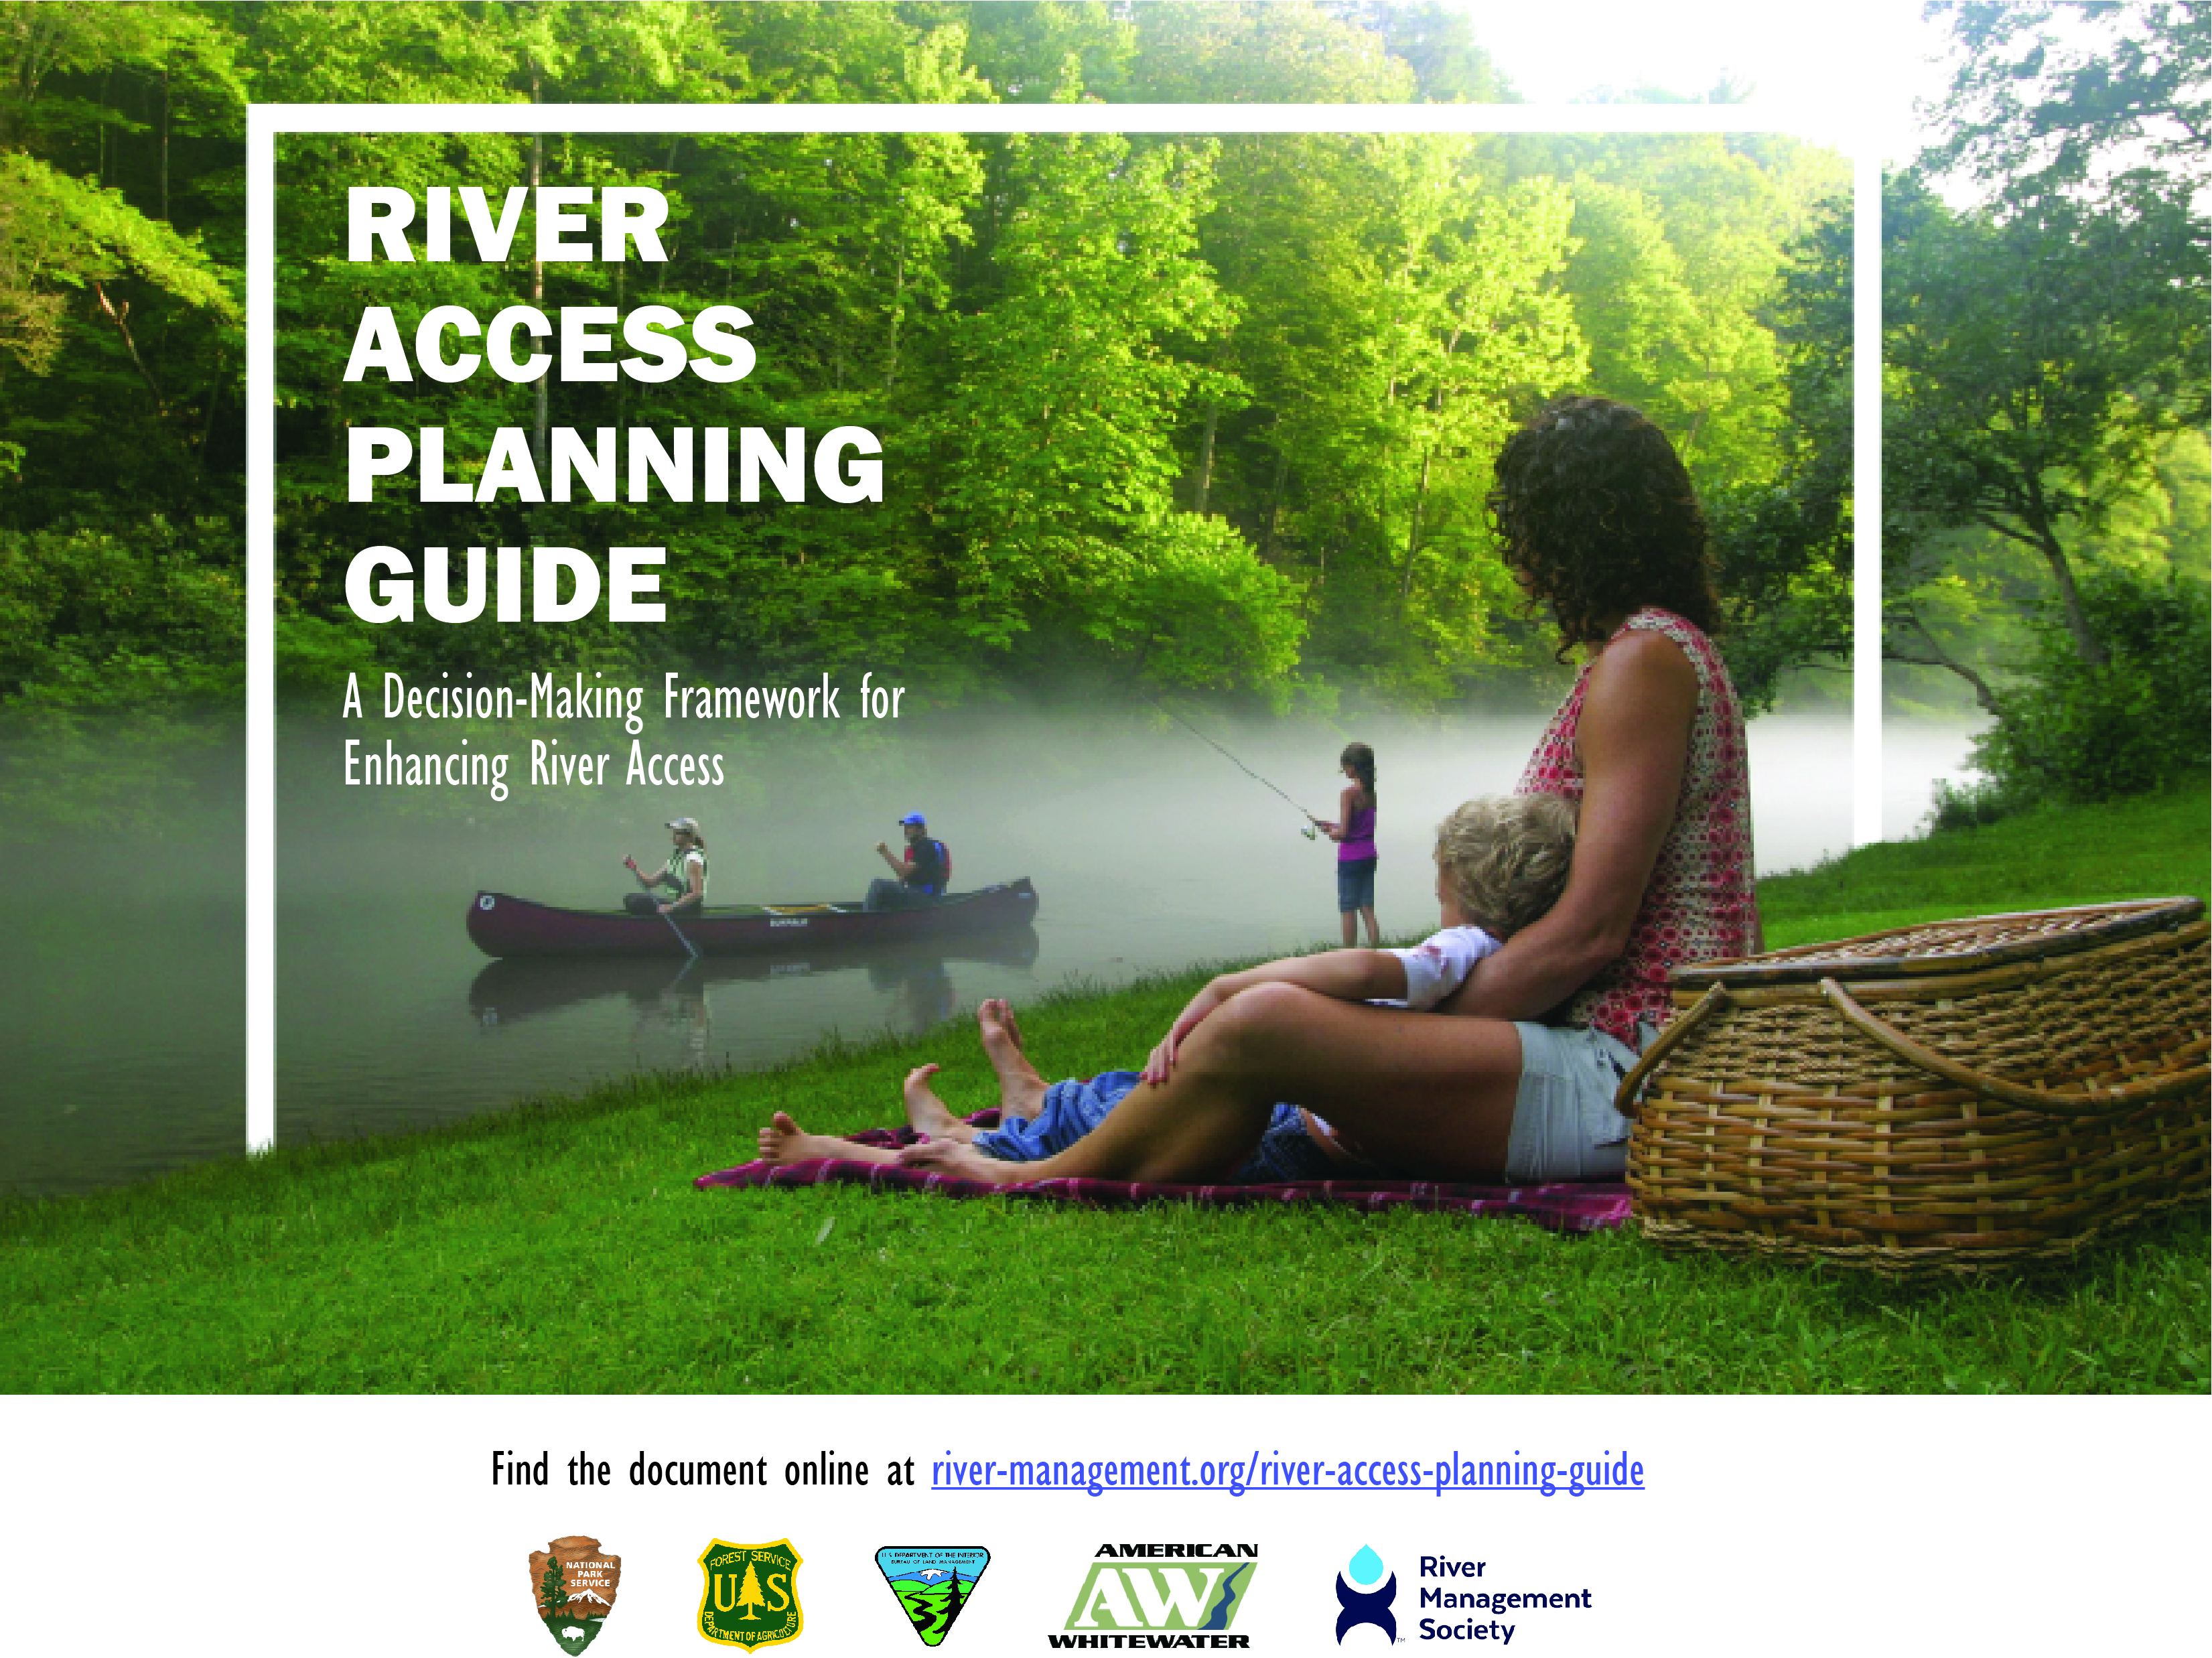 Promotional image for River Access Guide. Person sitting on a grassy hill, looking at canoers and anglers in the river.